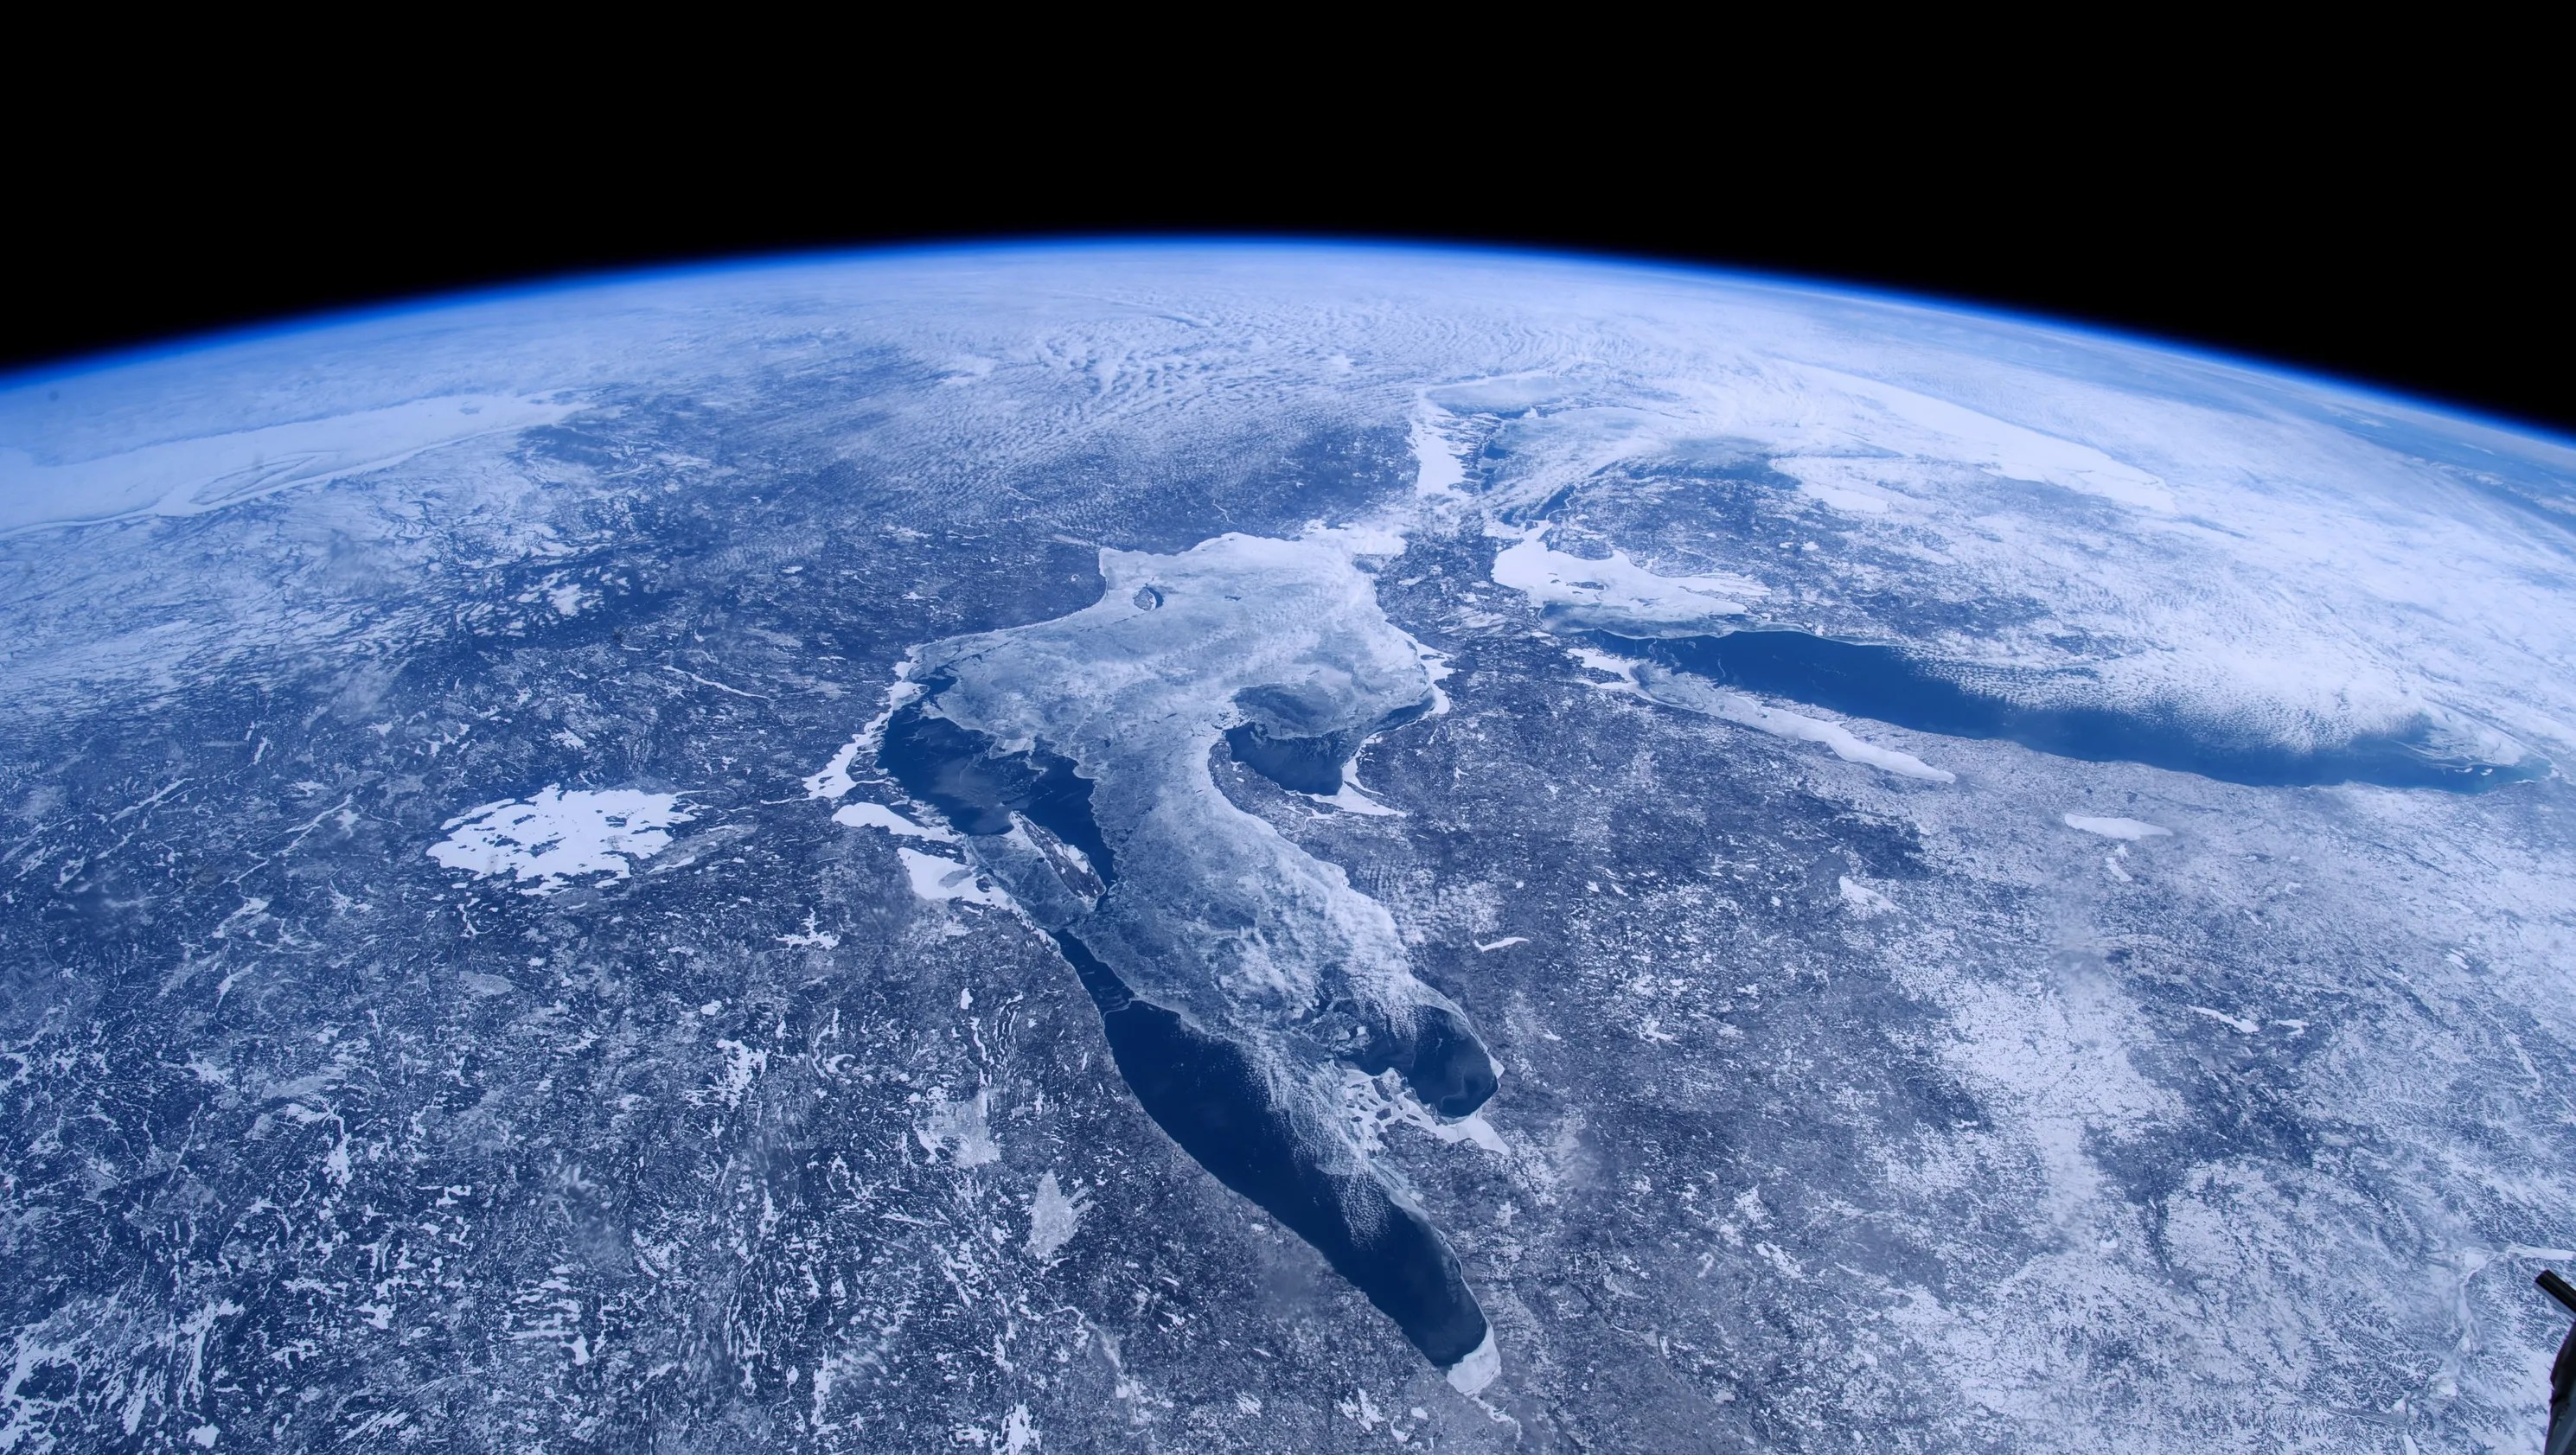 3d Wallpaper For Desktop Icon Photos Earth From The Space Station